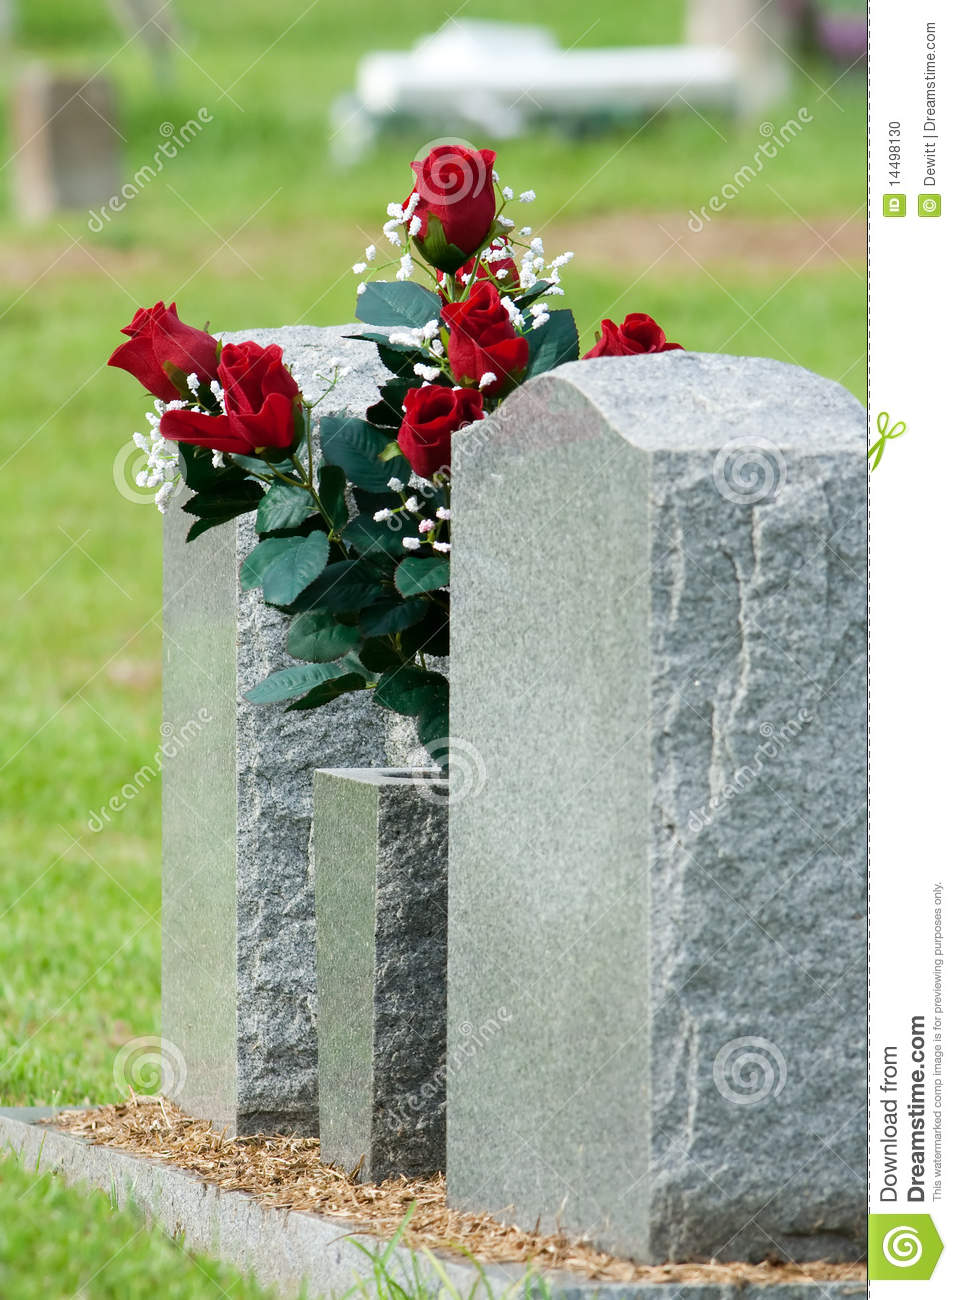 Red Grave Flowers Stock Photo Image Of Cemetery Head